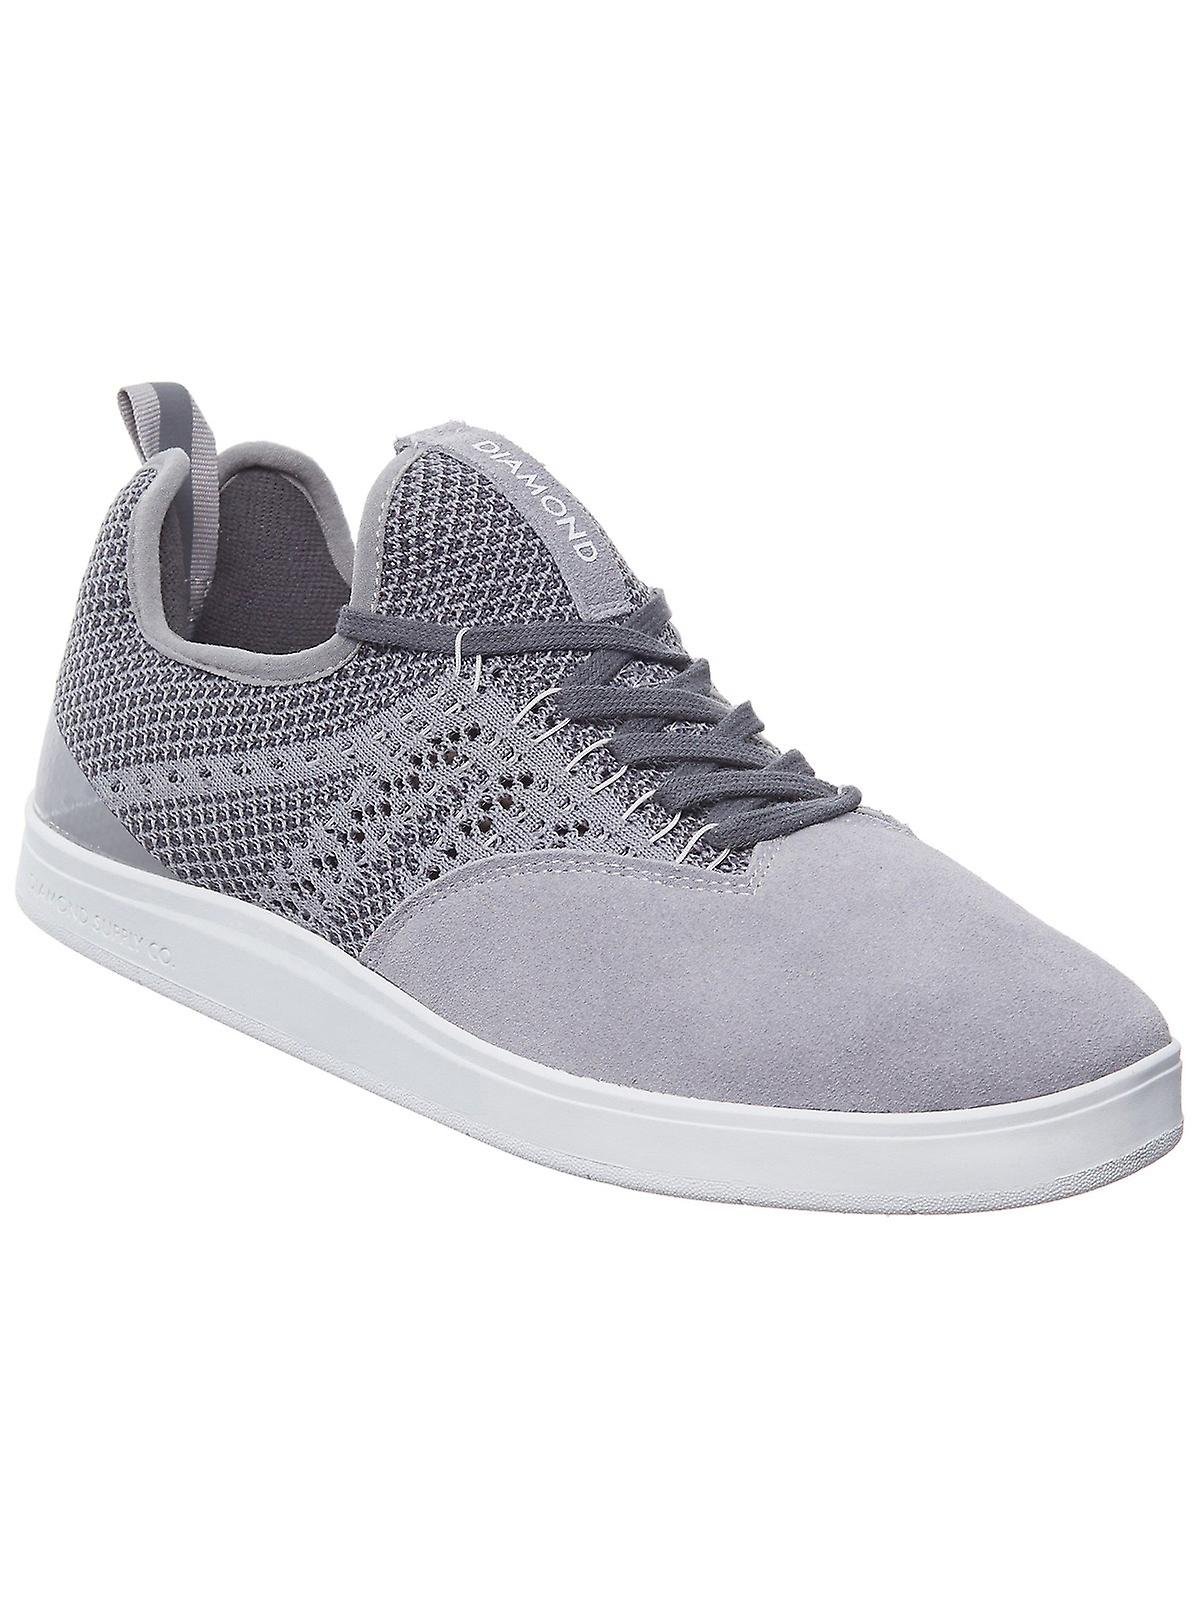 Diamond Supply Co grigio All Day scarpe | Pacchetto Elegante E Robusto